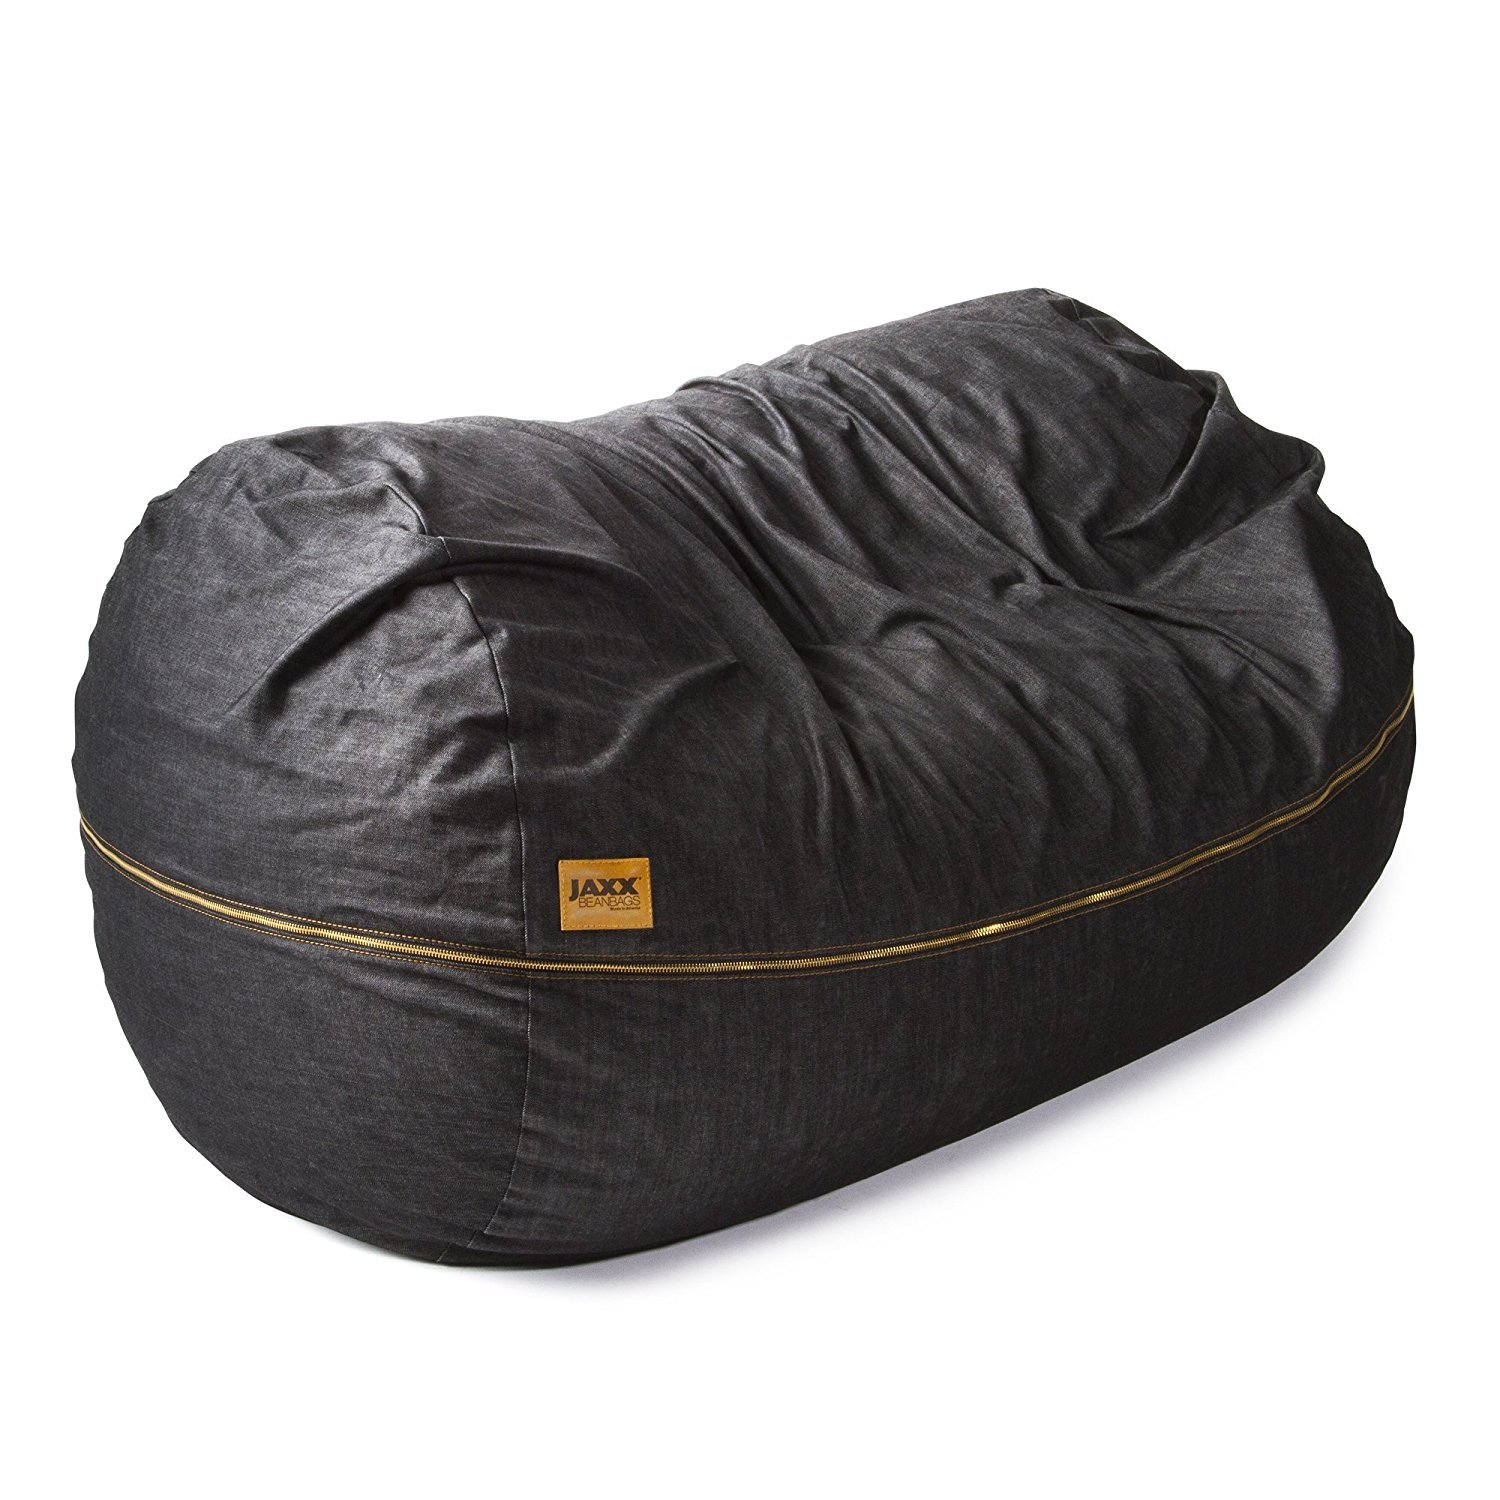 Huge Bean Bag Chairs Home Furniture Design